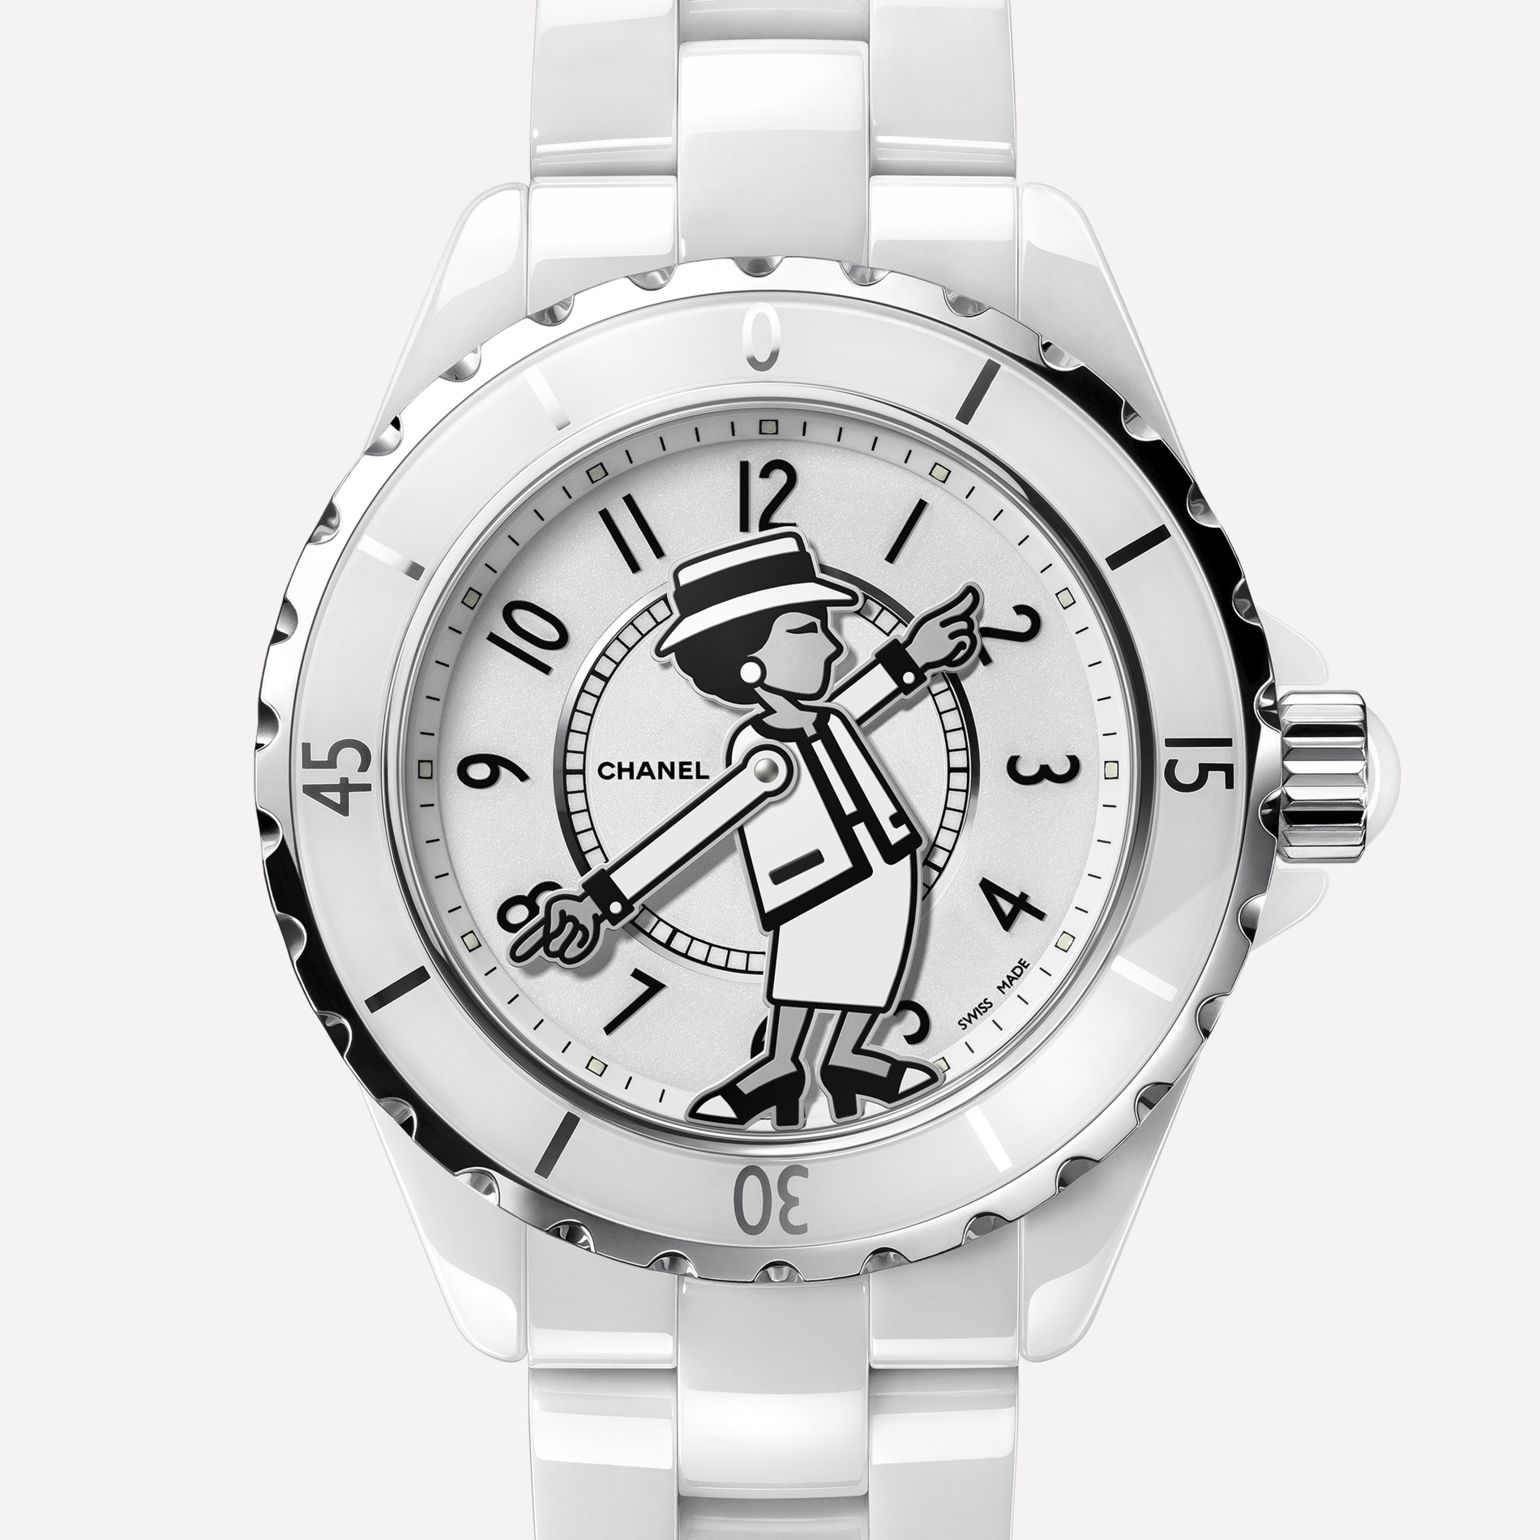 MADEMOISELLE J12 White ceramic and steel, silhouette of Mademoiselle CHANEL